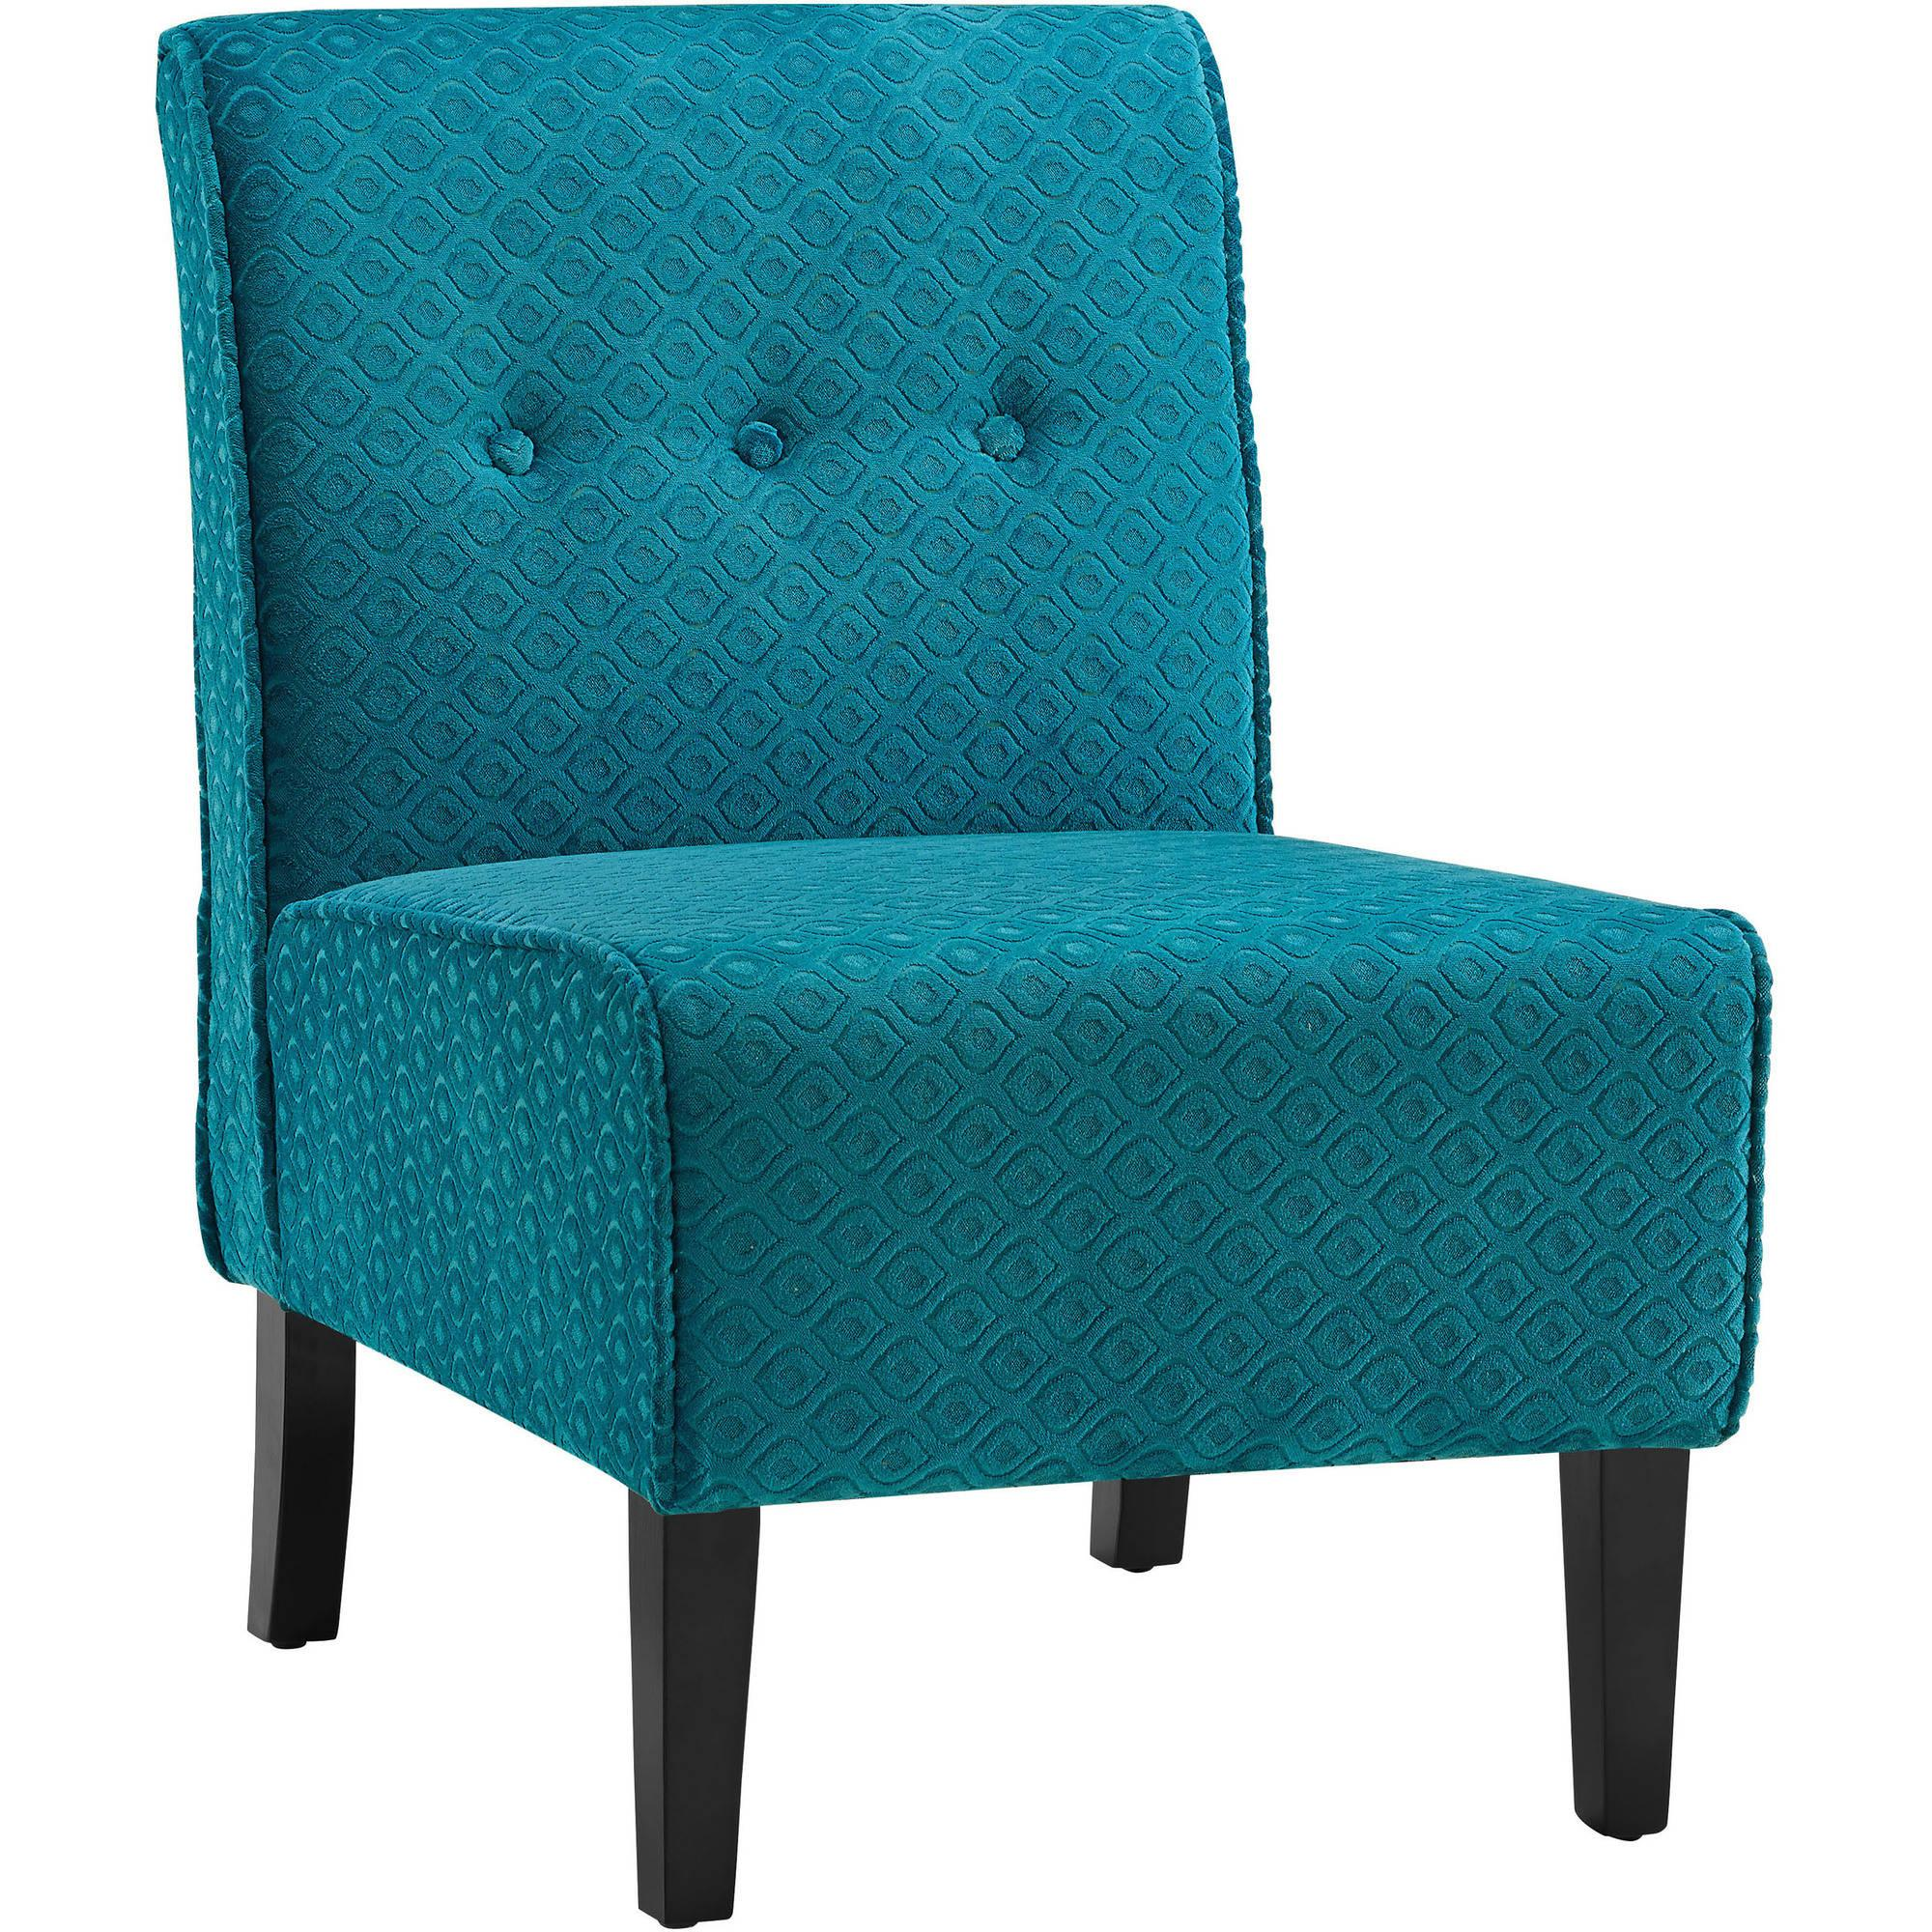 Blue Accent Chair: Coco Teal Blue Accent Chair